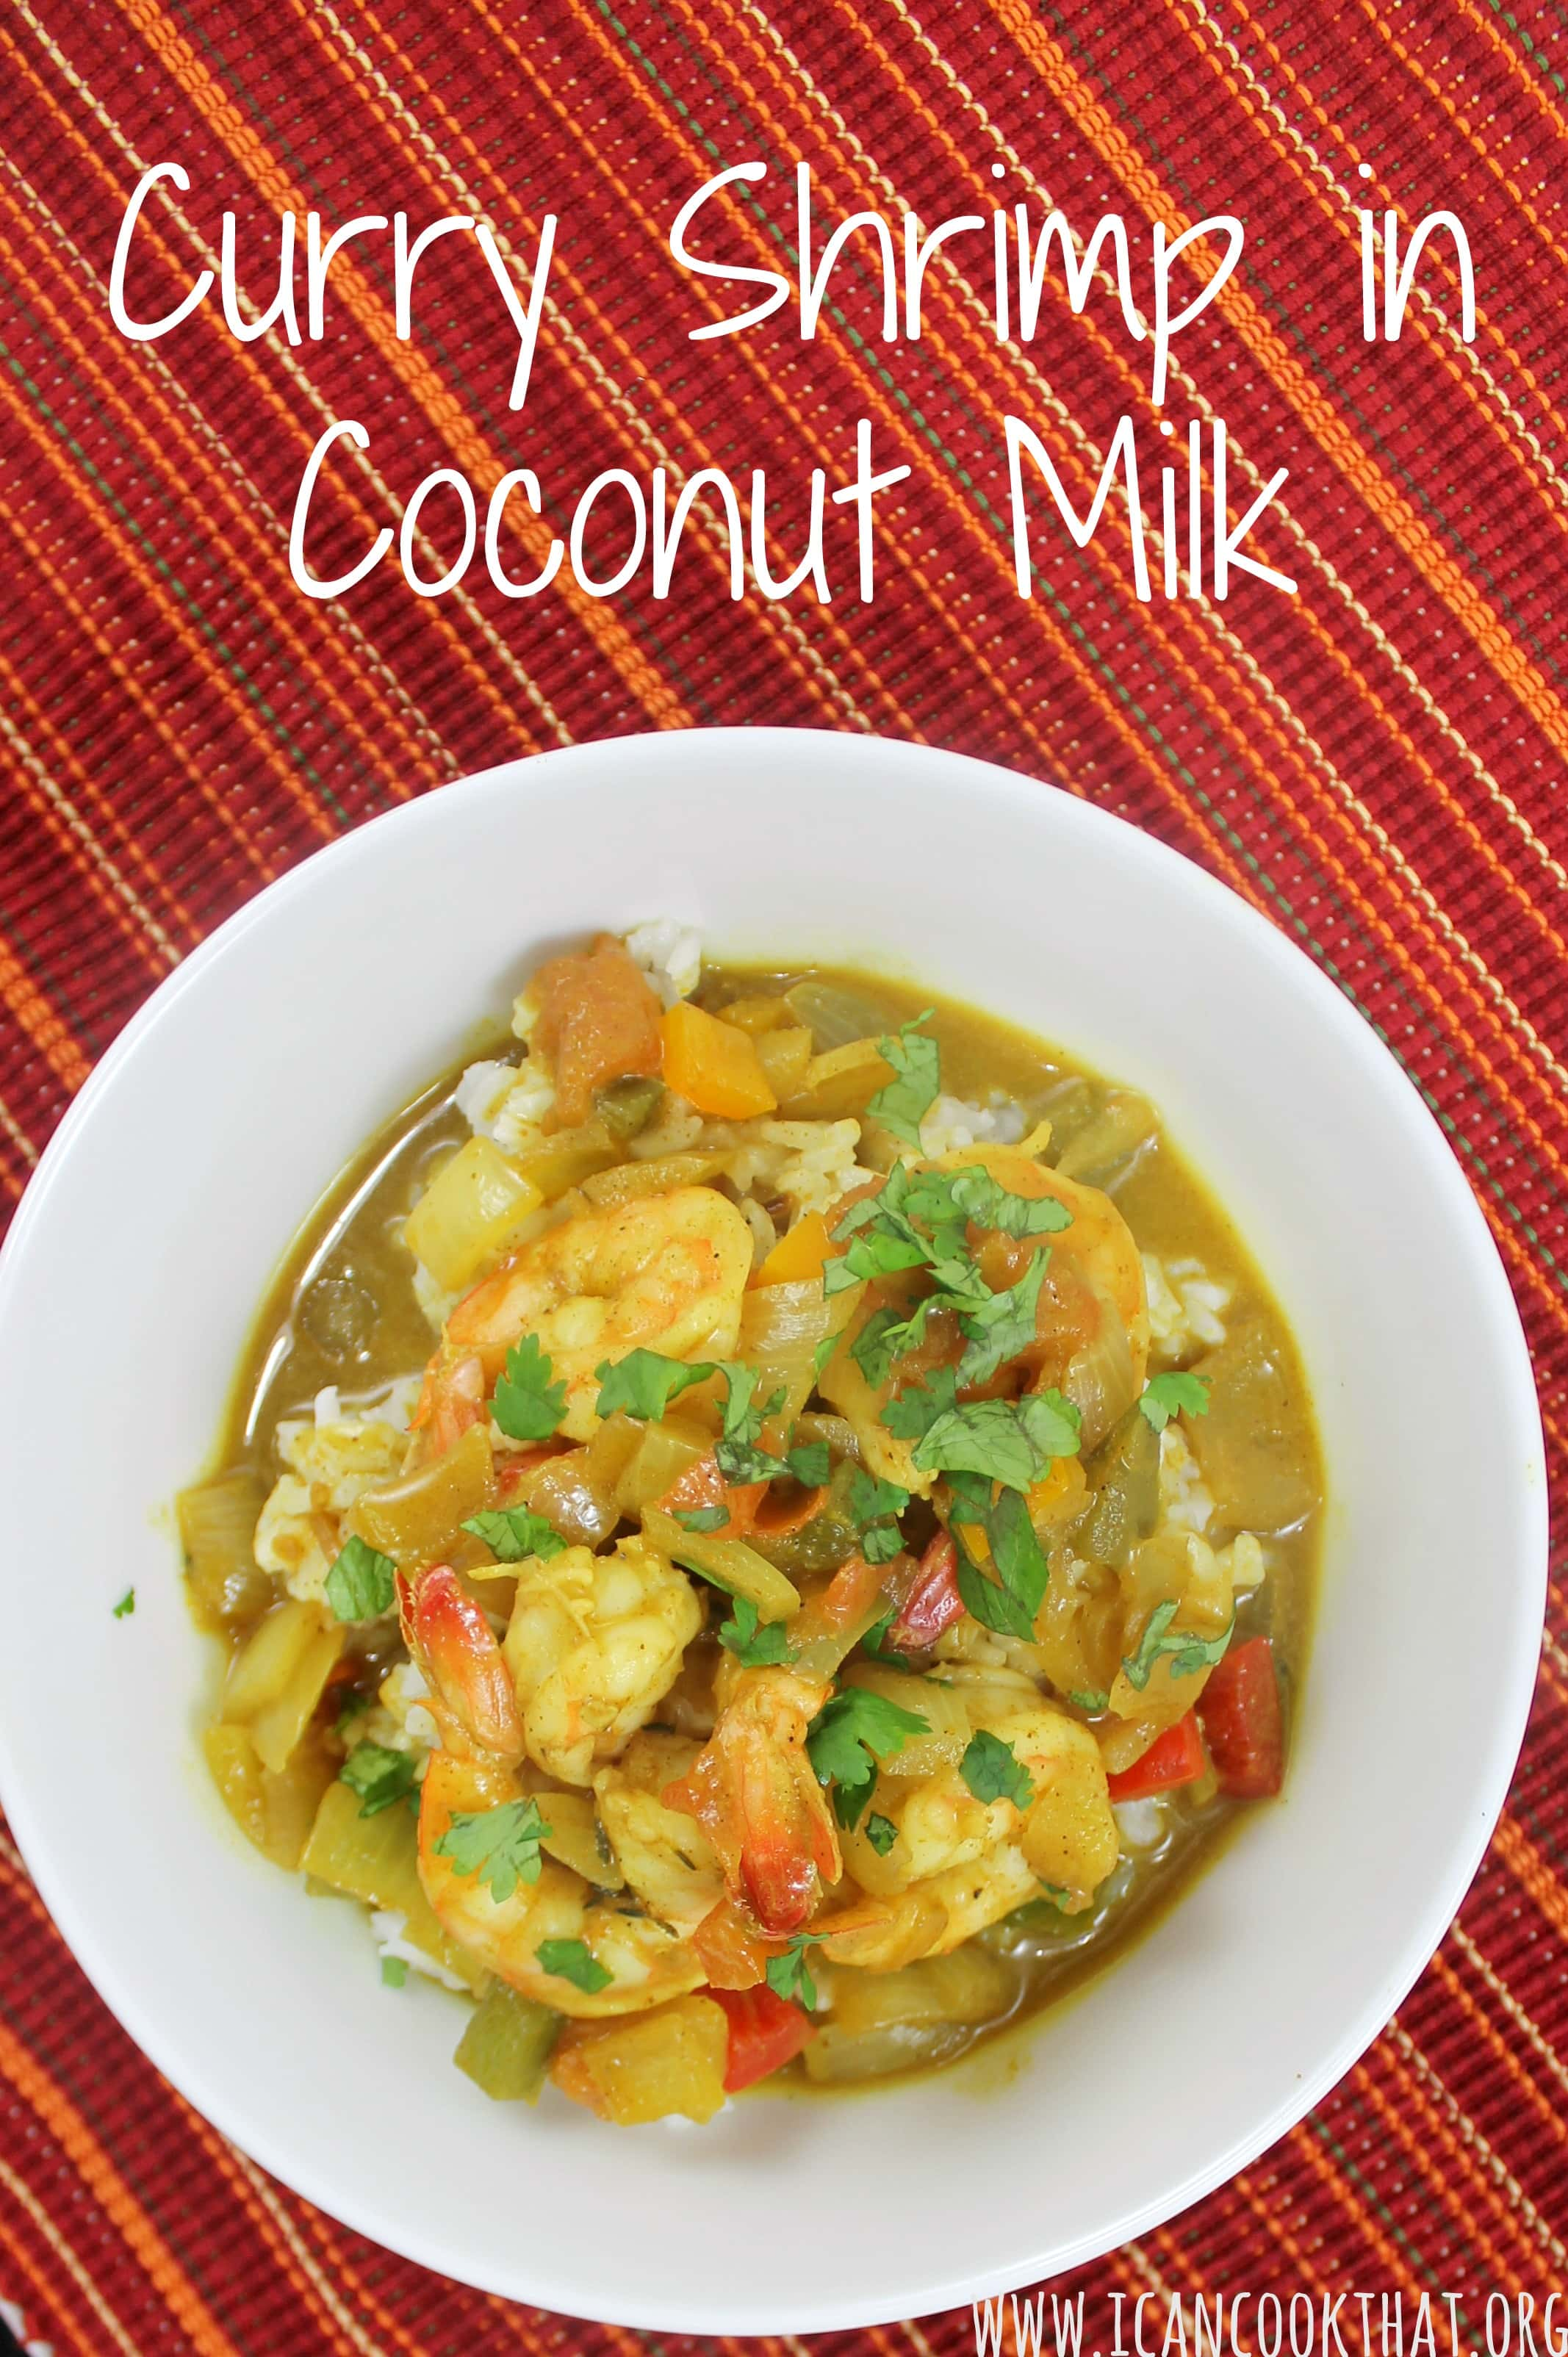 Curry Shrimp in Coconut Milk Recipe | I Can Cook That